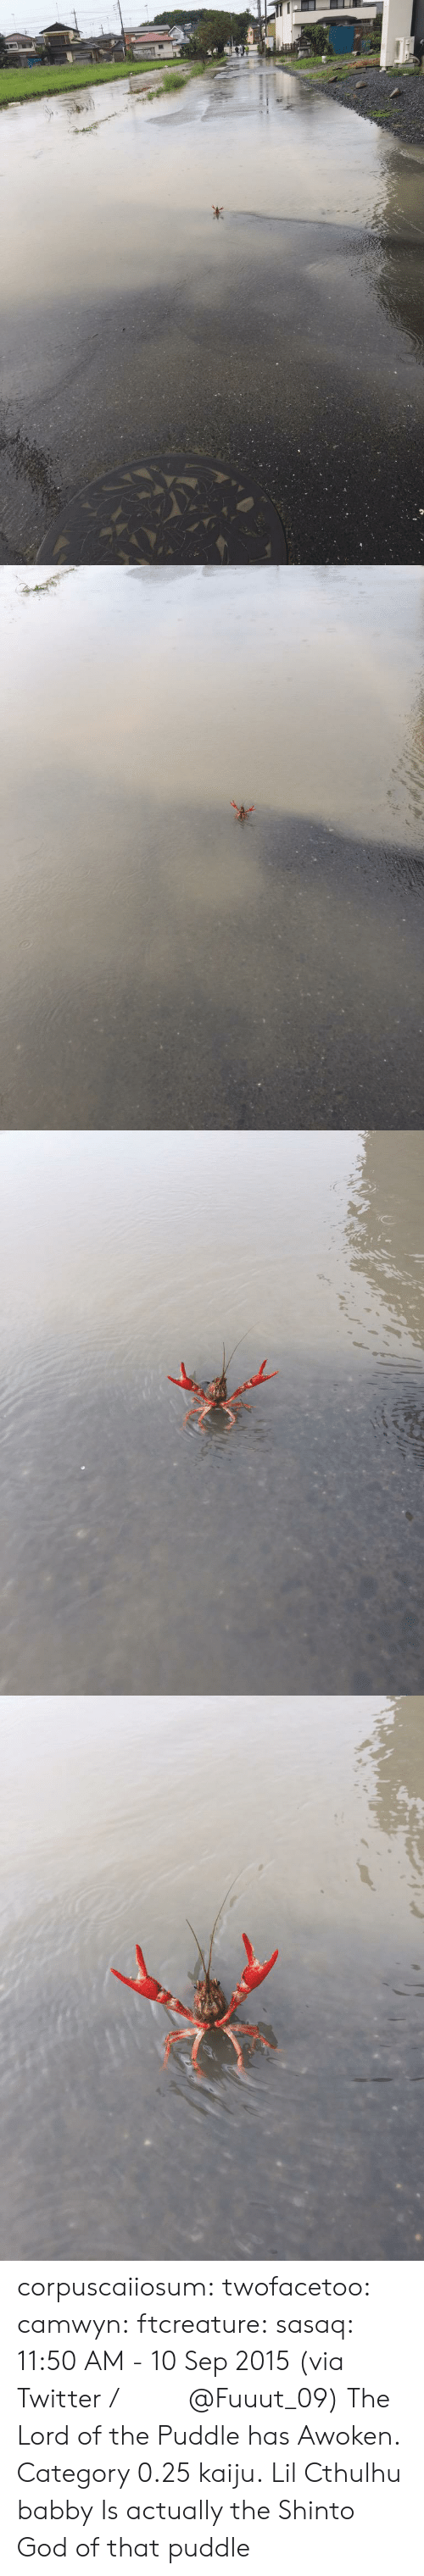 Cthulhu: corpuscaiiosum: twofacetoo:   camwyn:  ftcreature:  sasaq:  11:50 AM - 10 Sep 2015 (via Twitter / ふ み な @Fuuut_09)   The Lord of the Puddle has Awoken.  Category 0.25 kaiju.  Lil Cthulhu babby   Is actually the Shinto God of that puddle